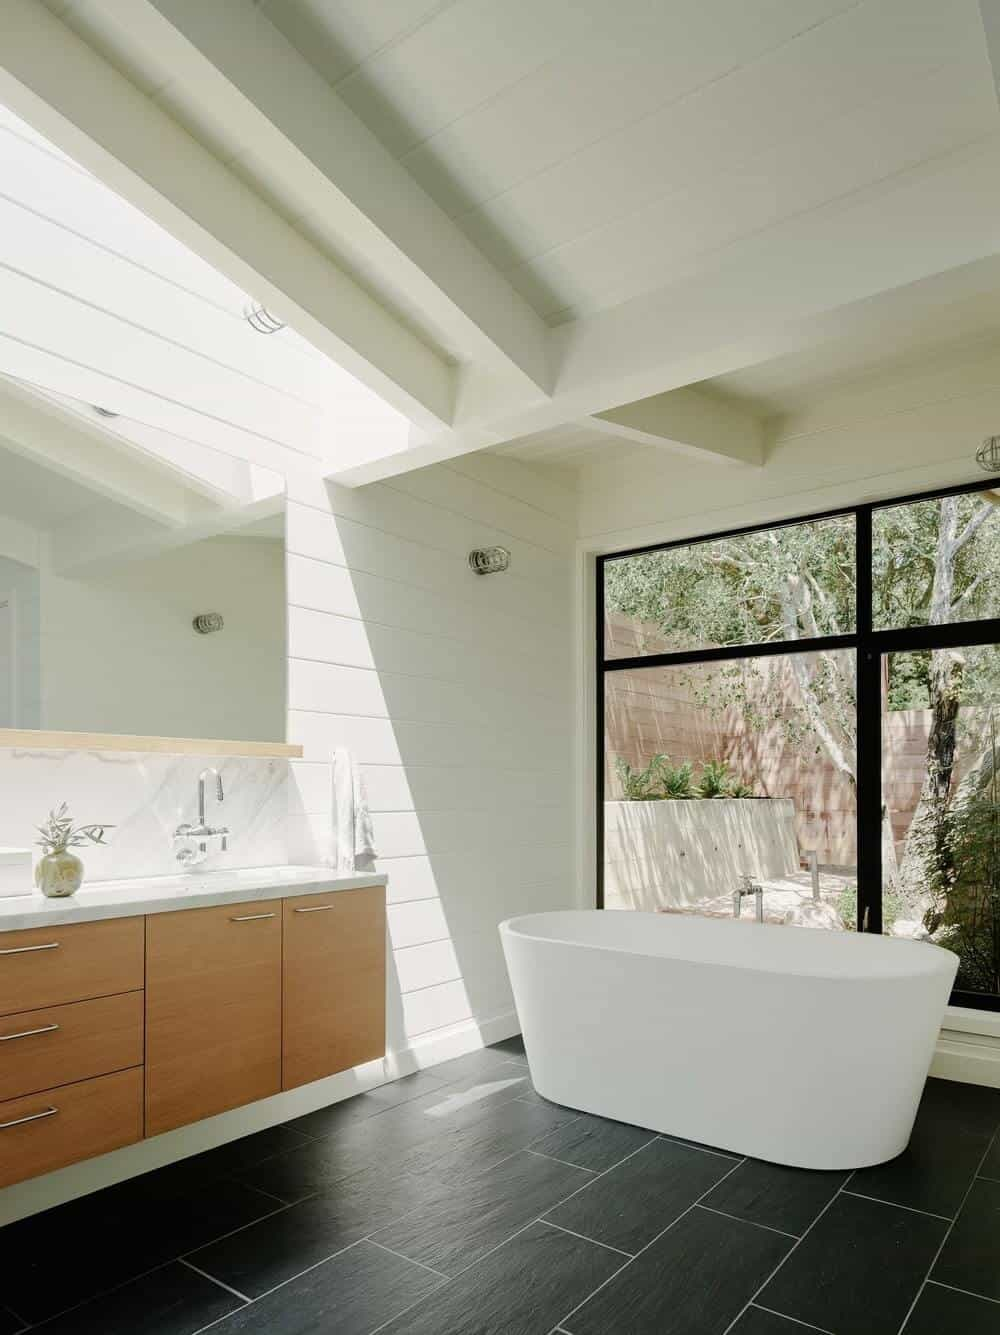 This primary bathroom features a modern pedestal tub on the black tiles flooring and a sliding door that leads to the garden. It also has white walls with a large mirror.